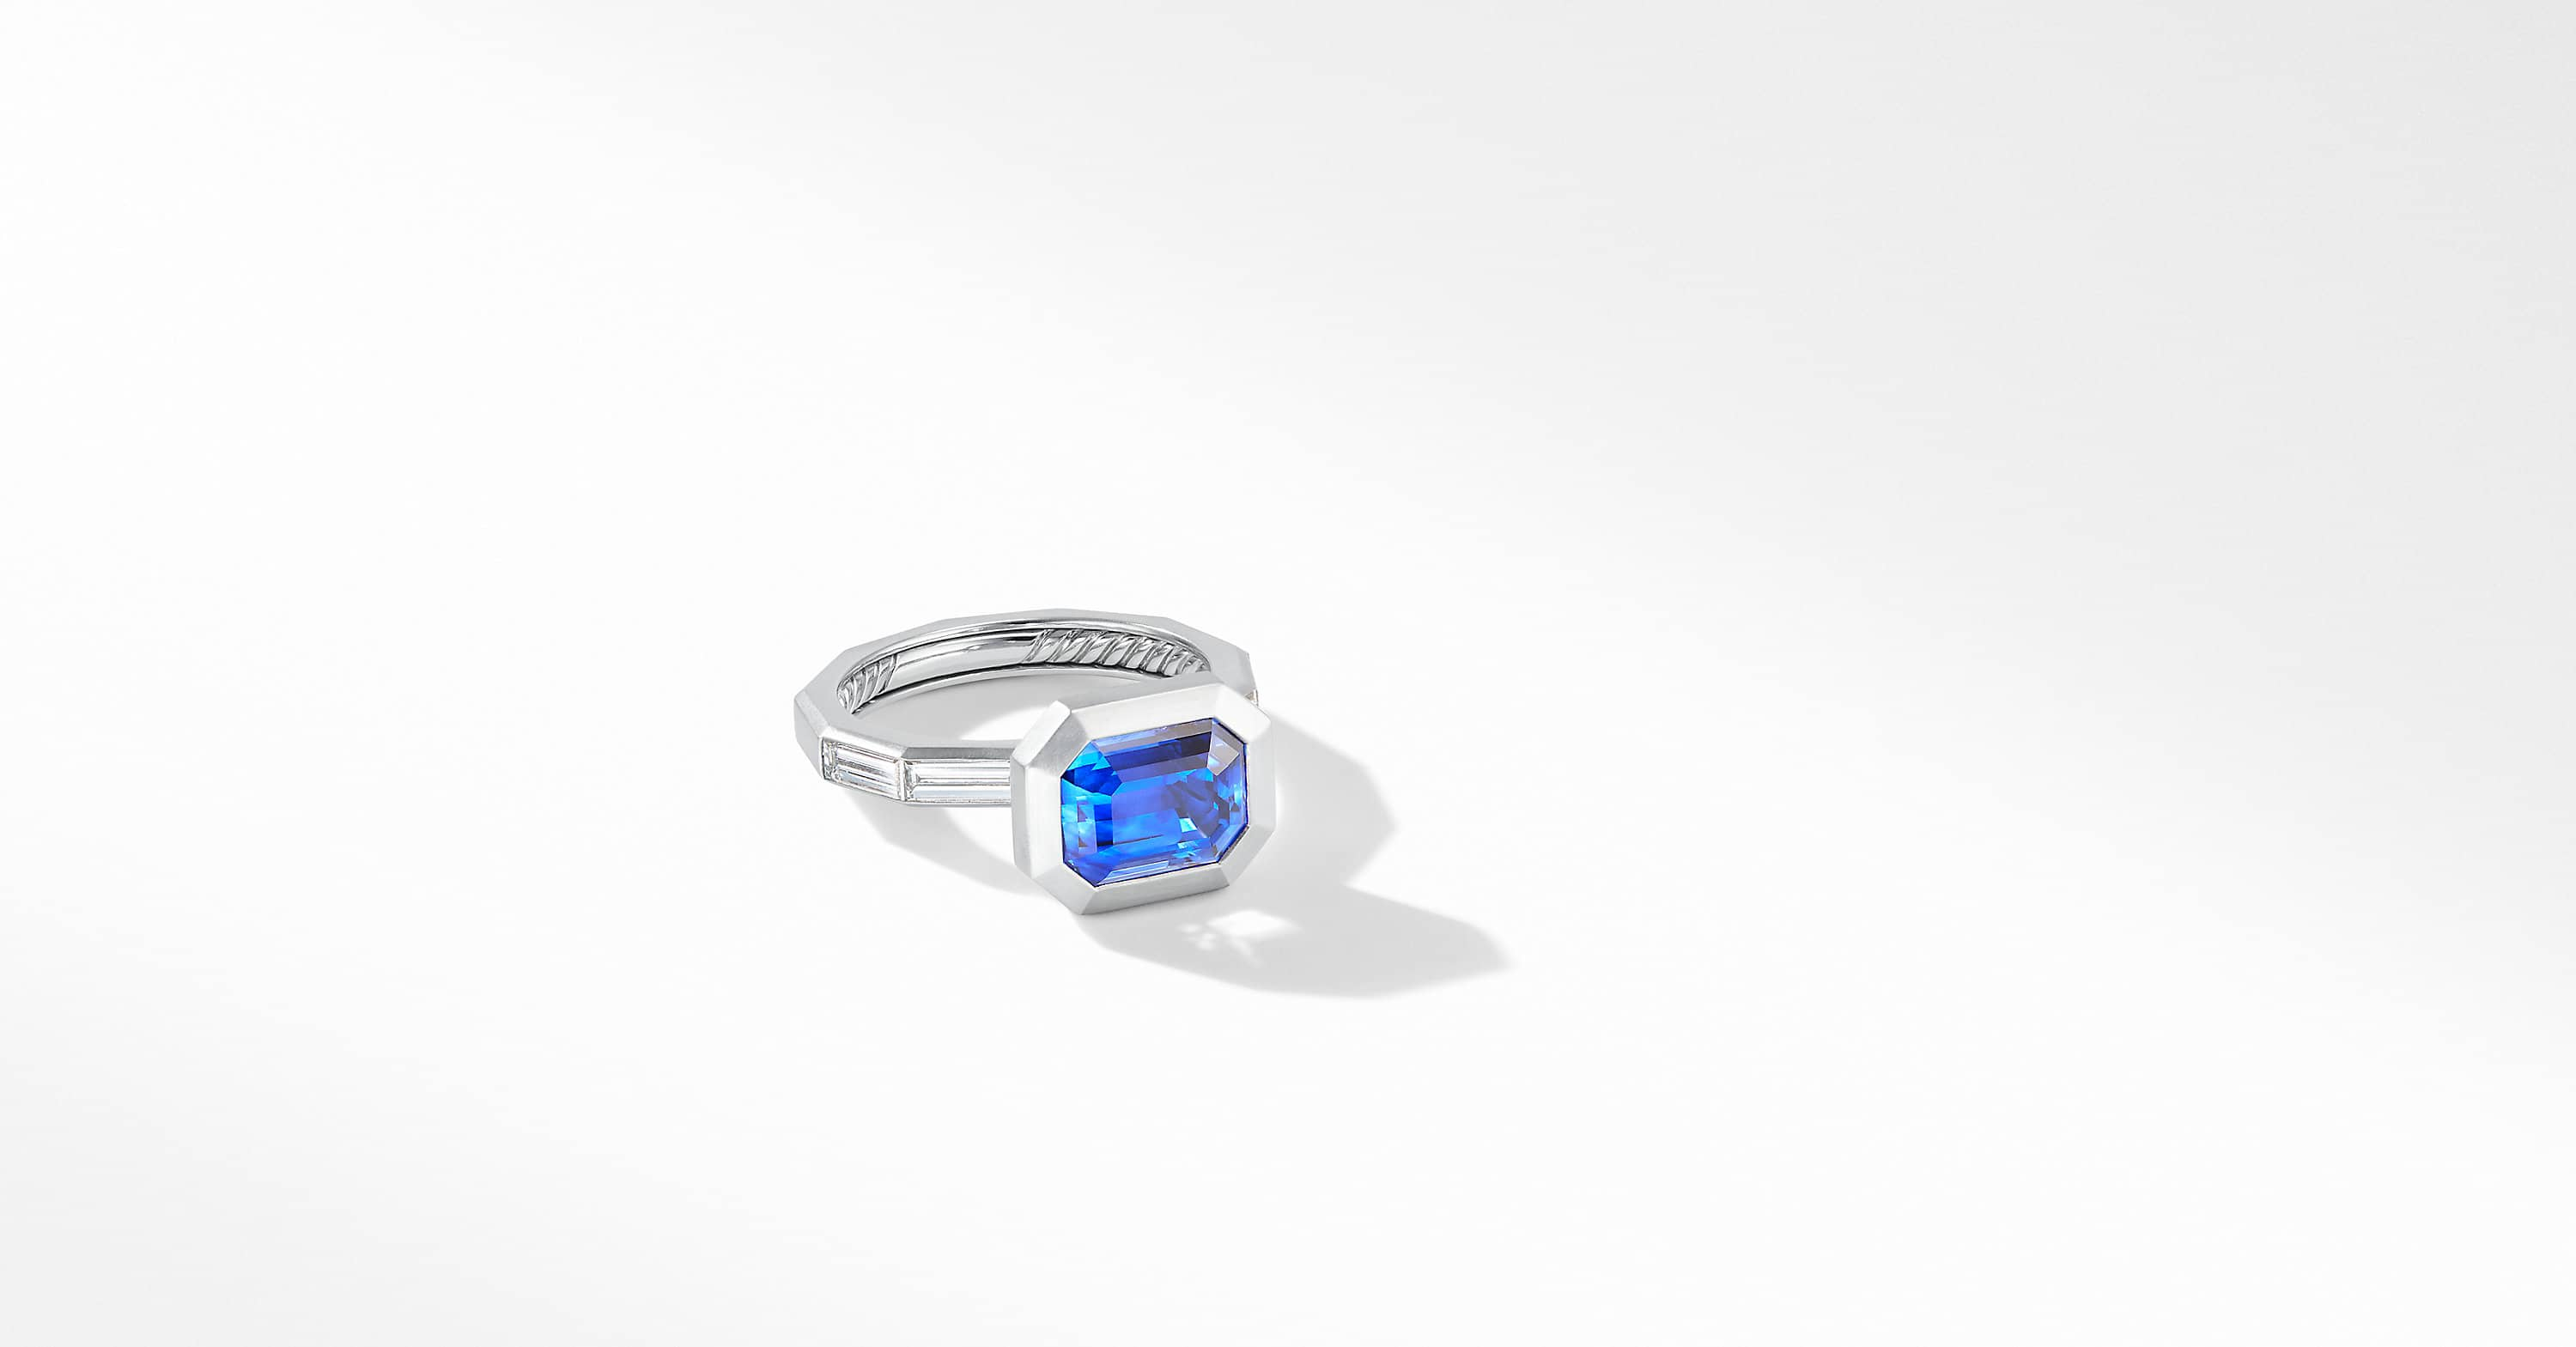 DY Delaunay Engagement Ring in Platinum with Blue Sapphire, Emerald